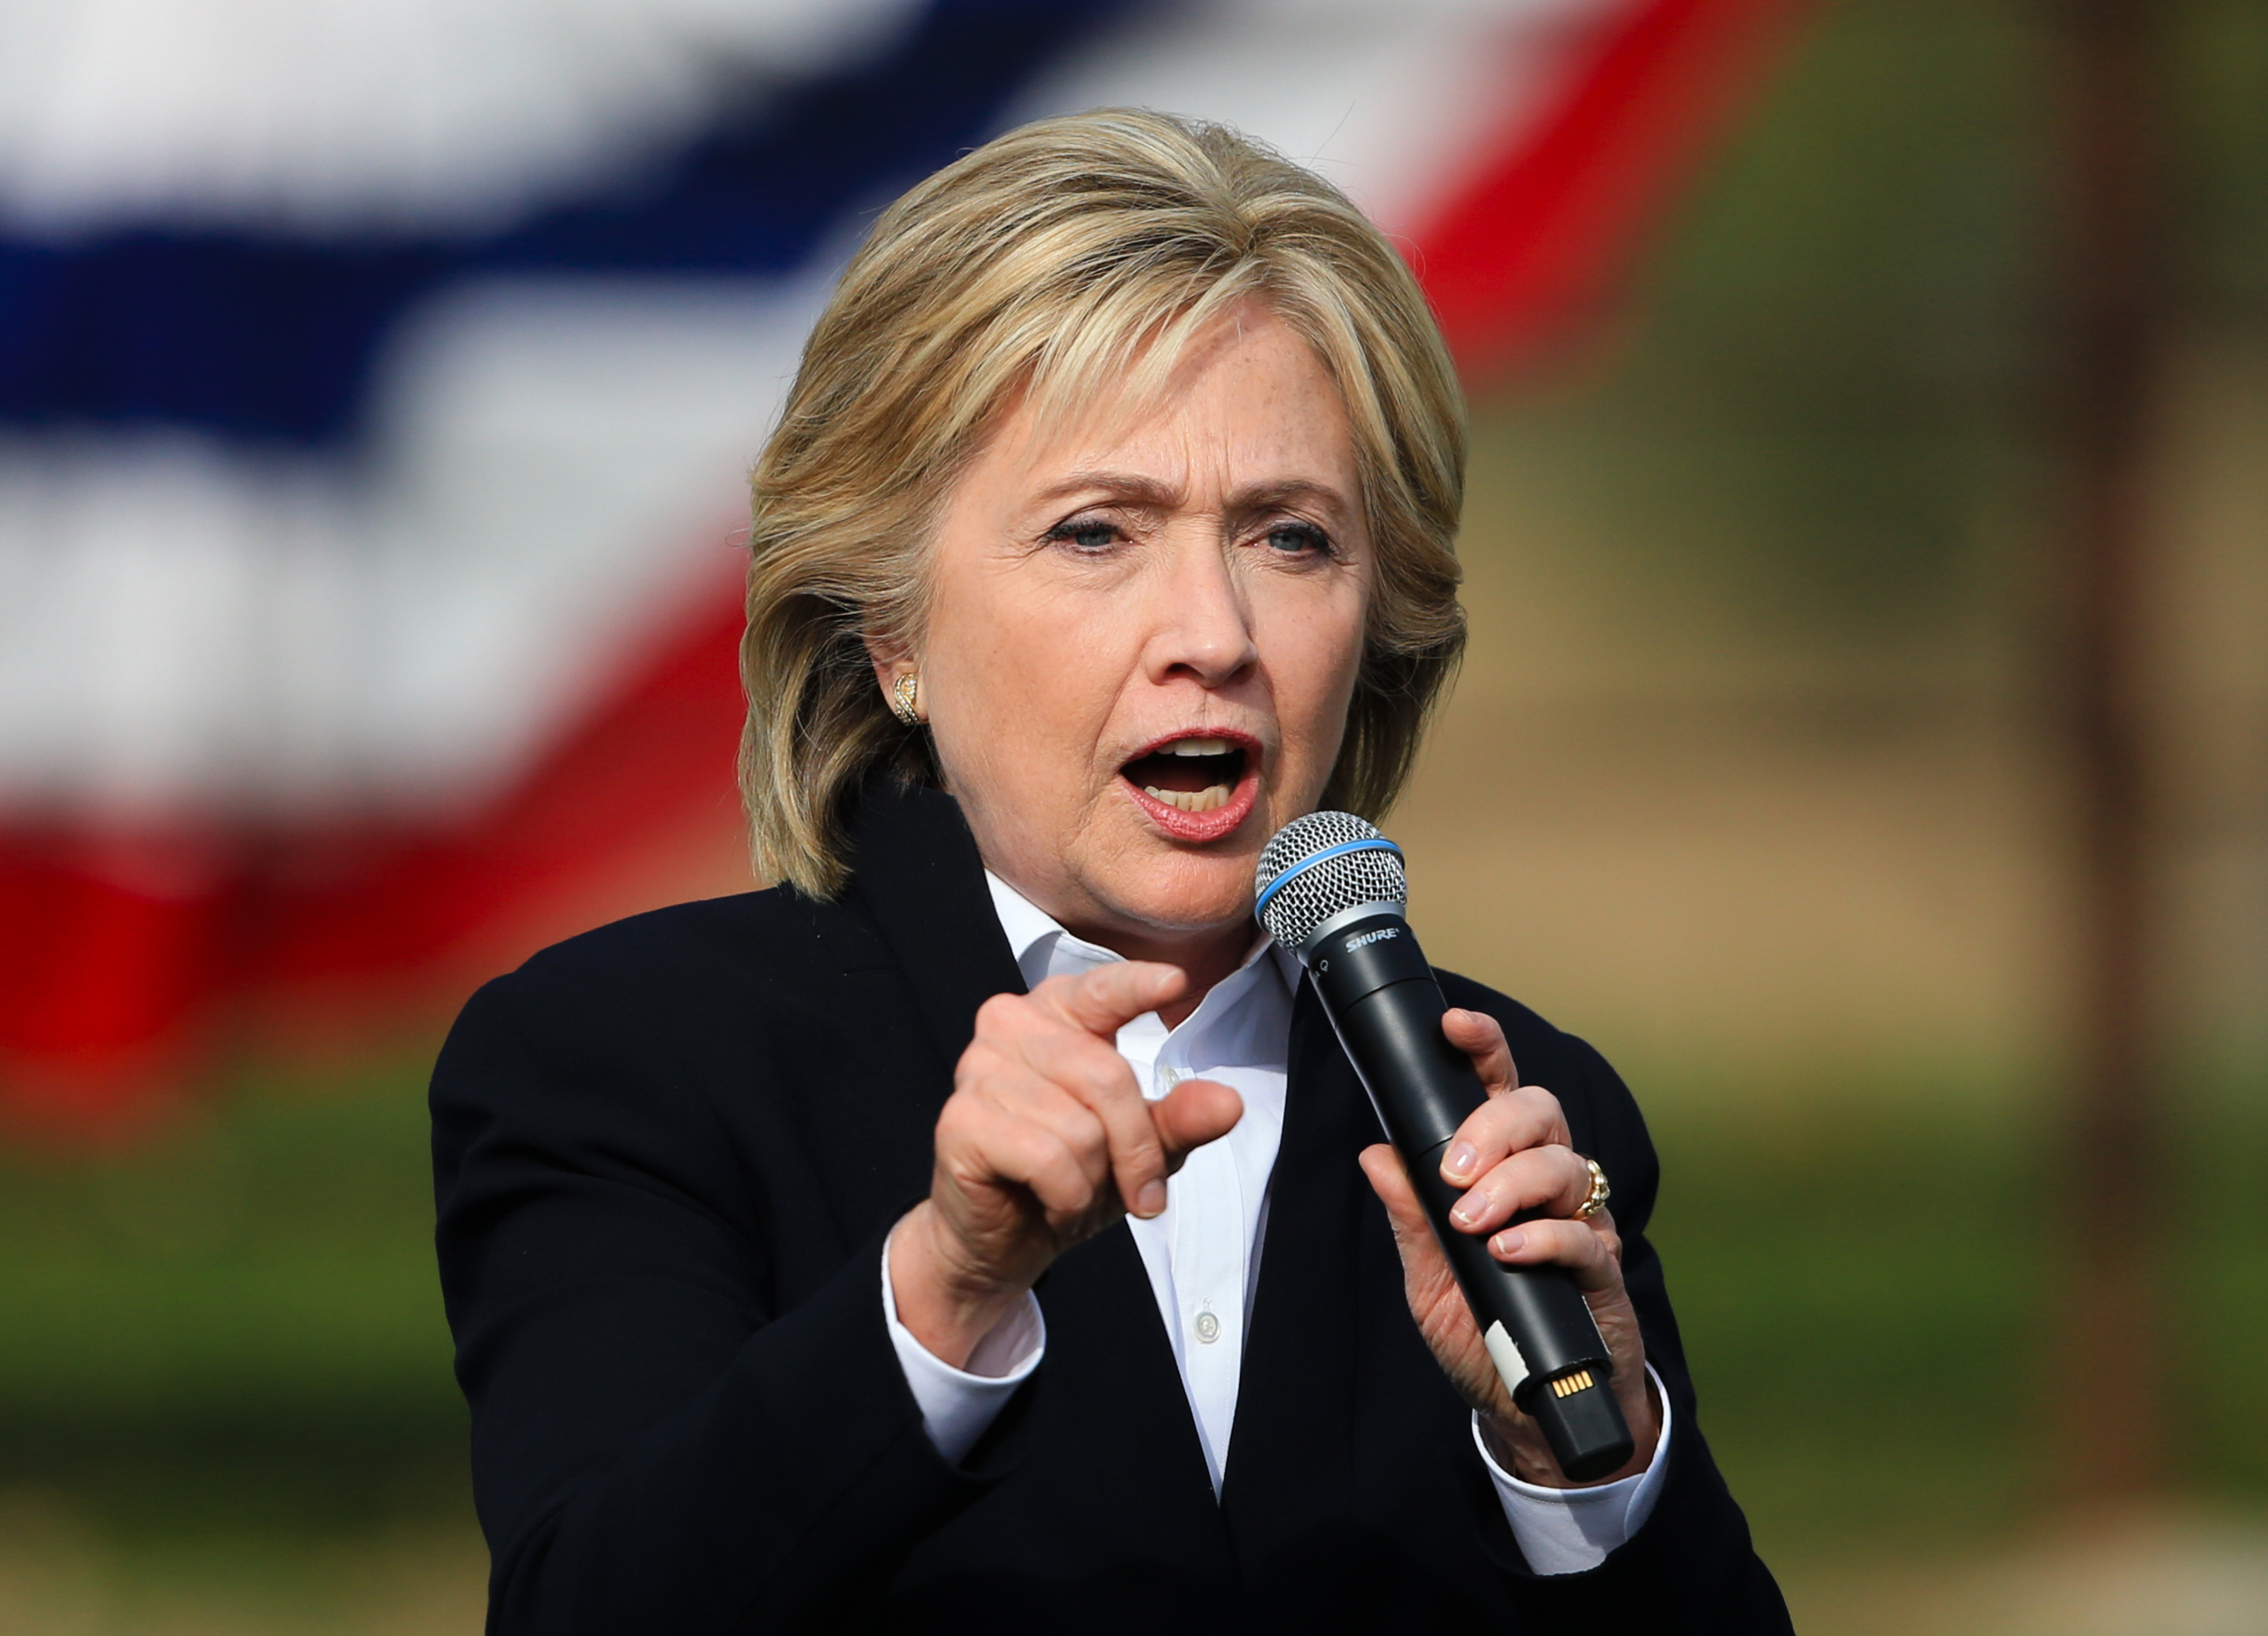 Democratic presidential candidate Hillary Rodham Clinton speaks during a campaign stop at the Westfair Amphitheater in Council Bluffs, Iowa, Oct. 7, 2015.